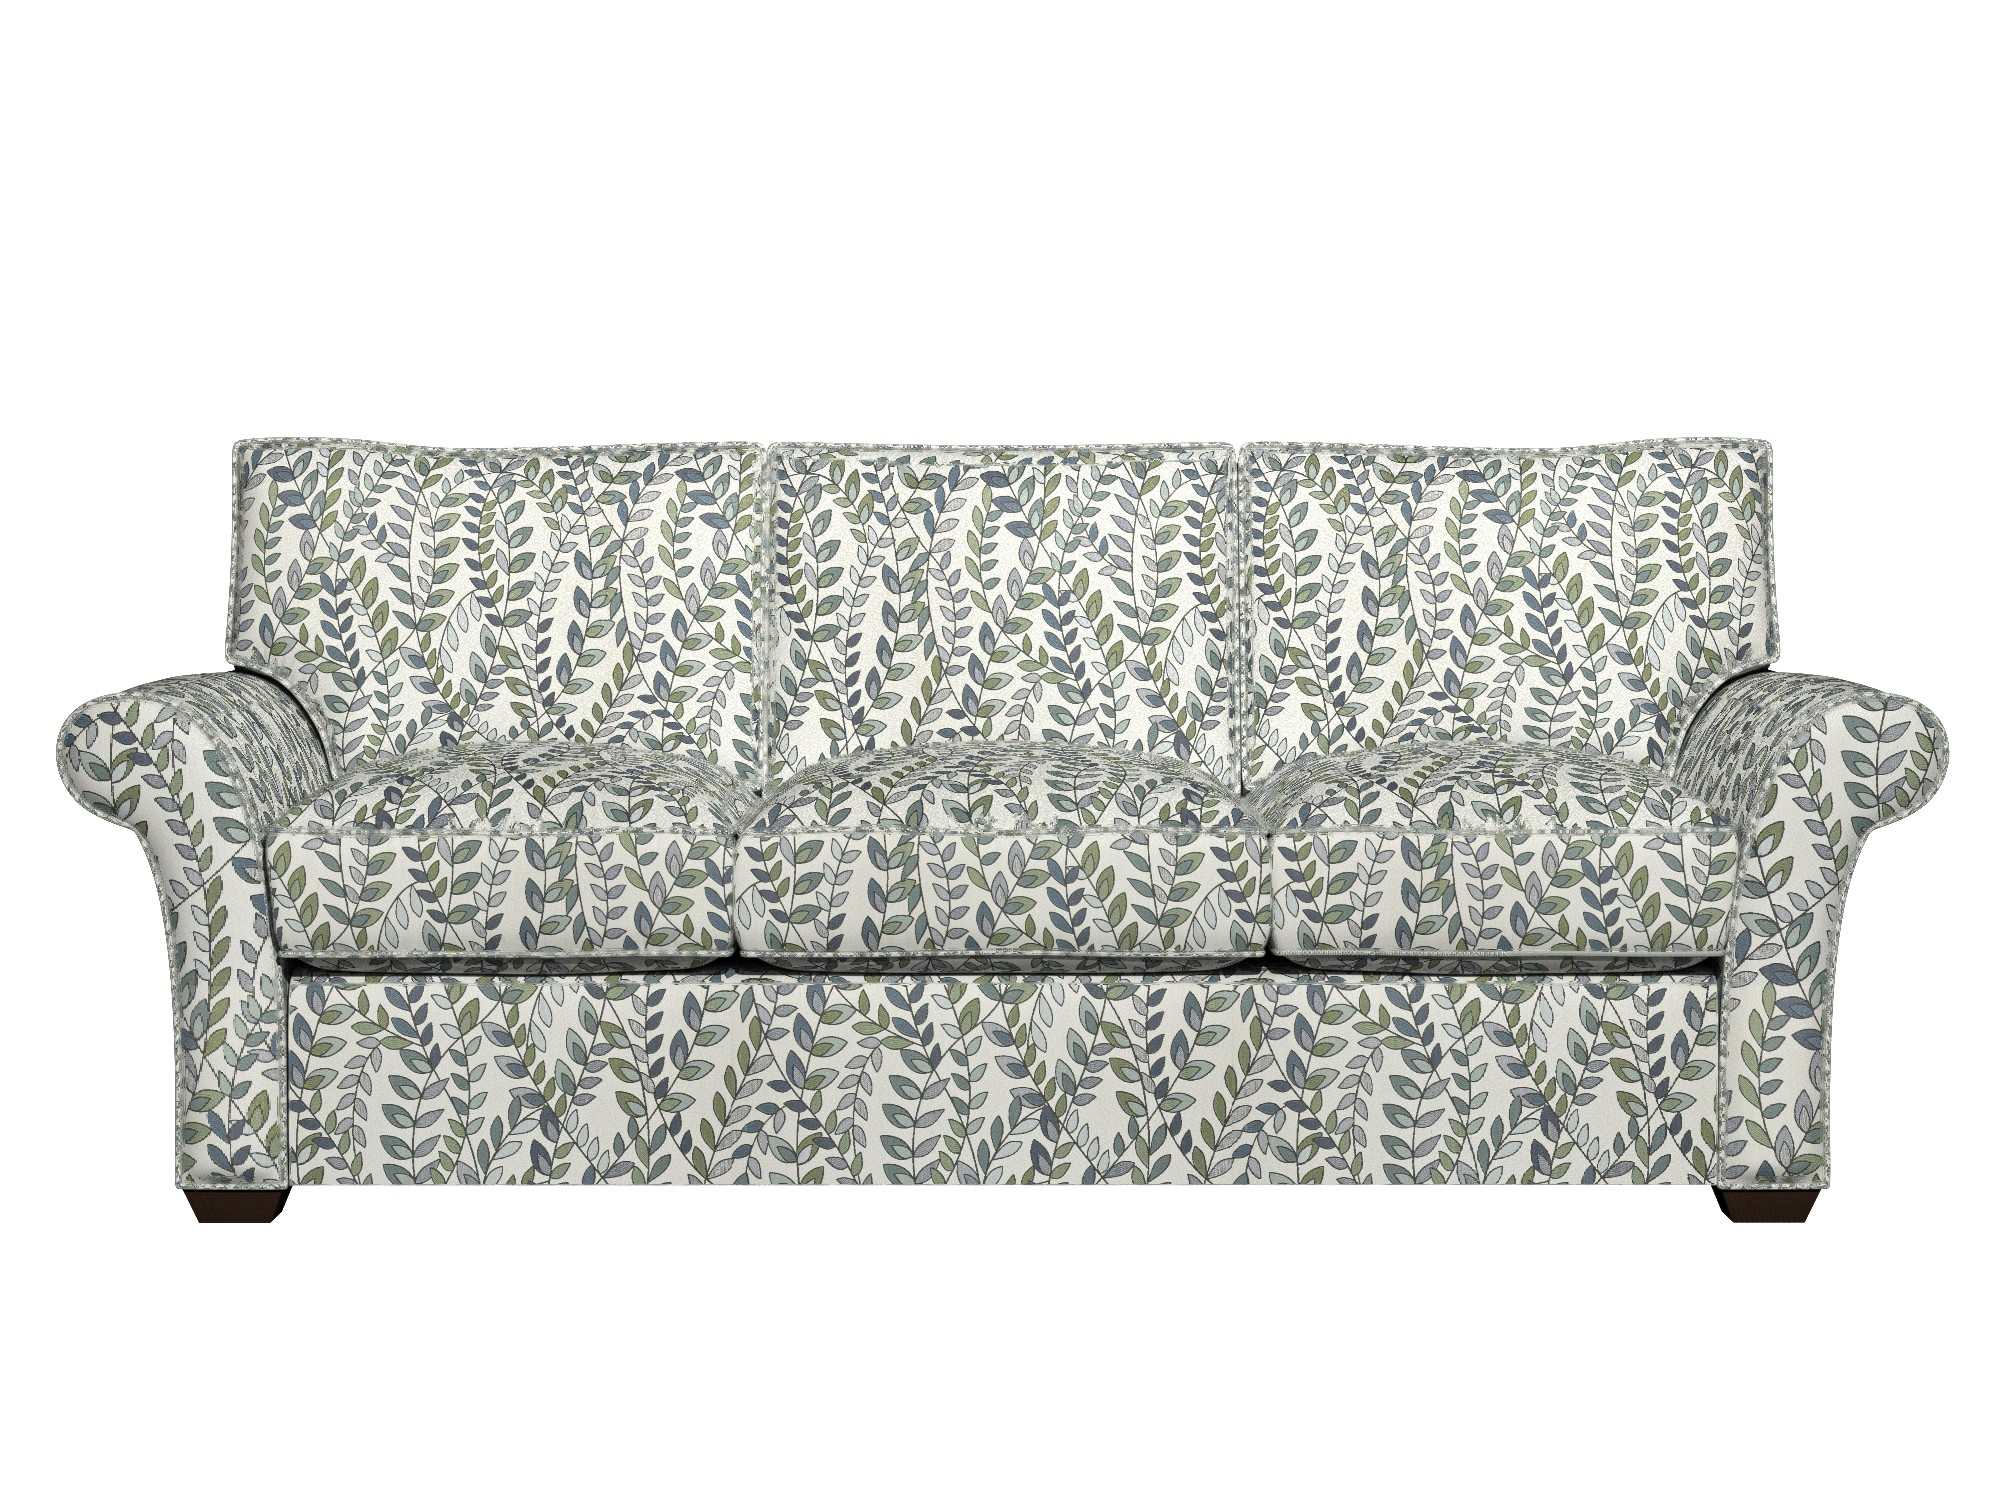 blue and white sofa fabric baron green off vines leaves upholstery